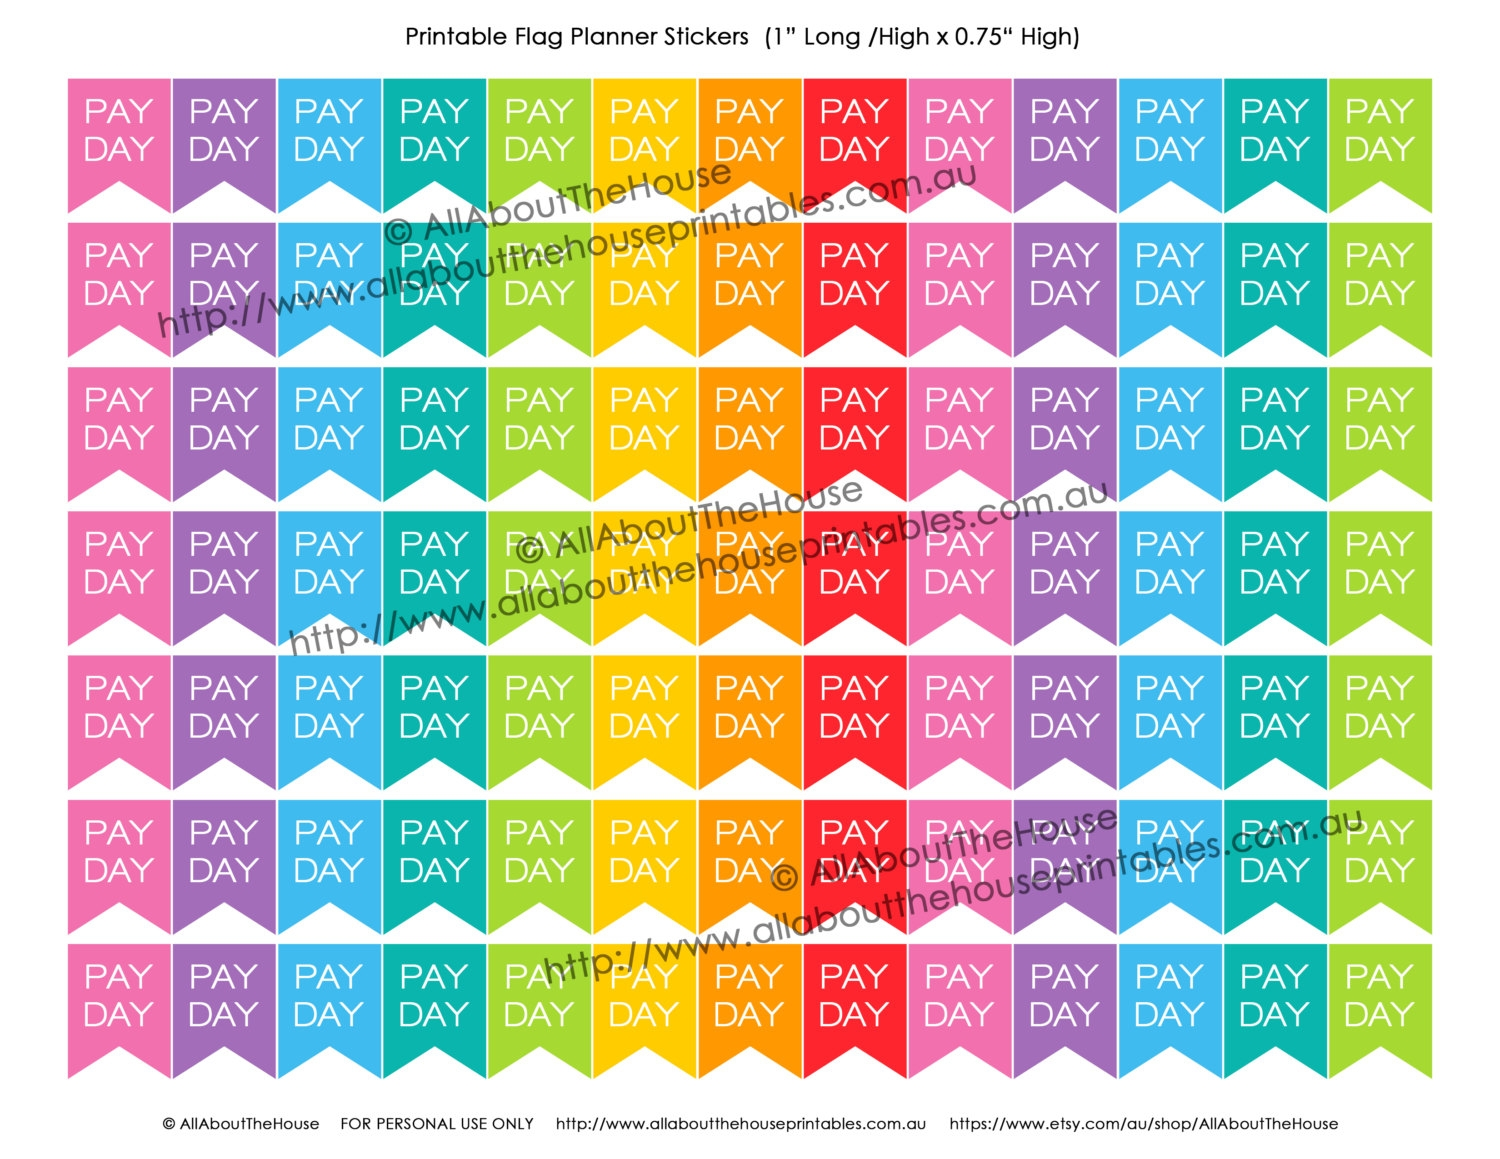 Pay Day Printable Planner Stickers Flag Banner Calendar Money3abry